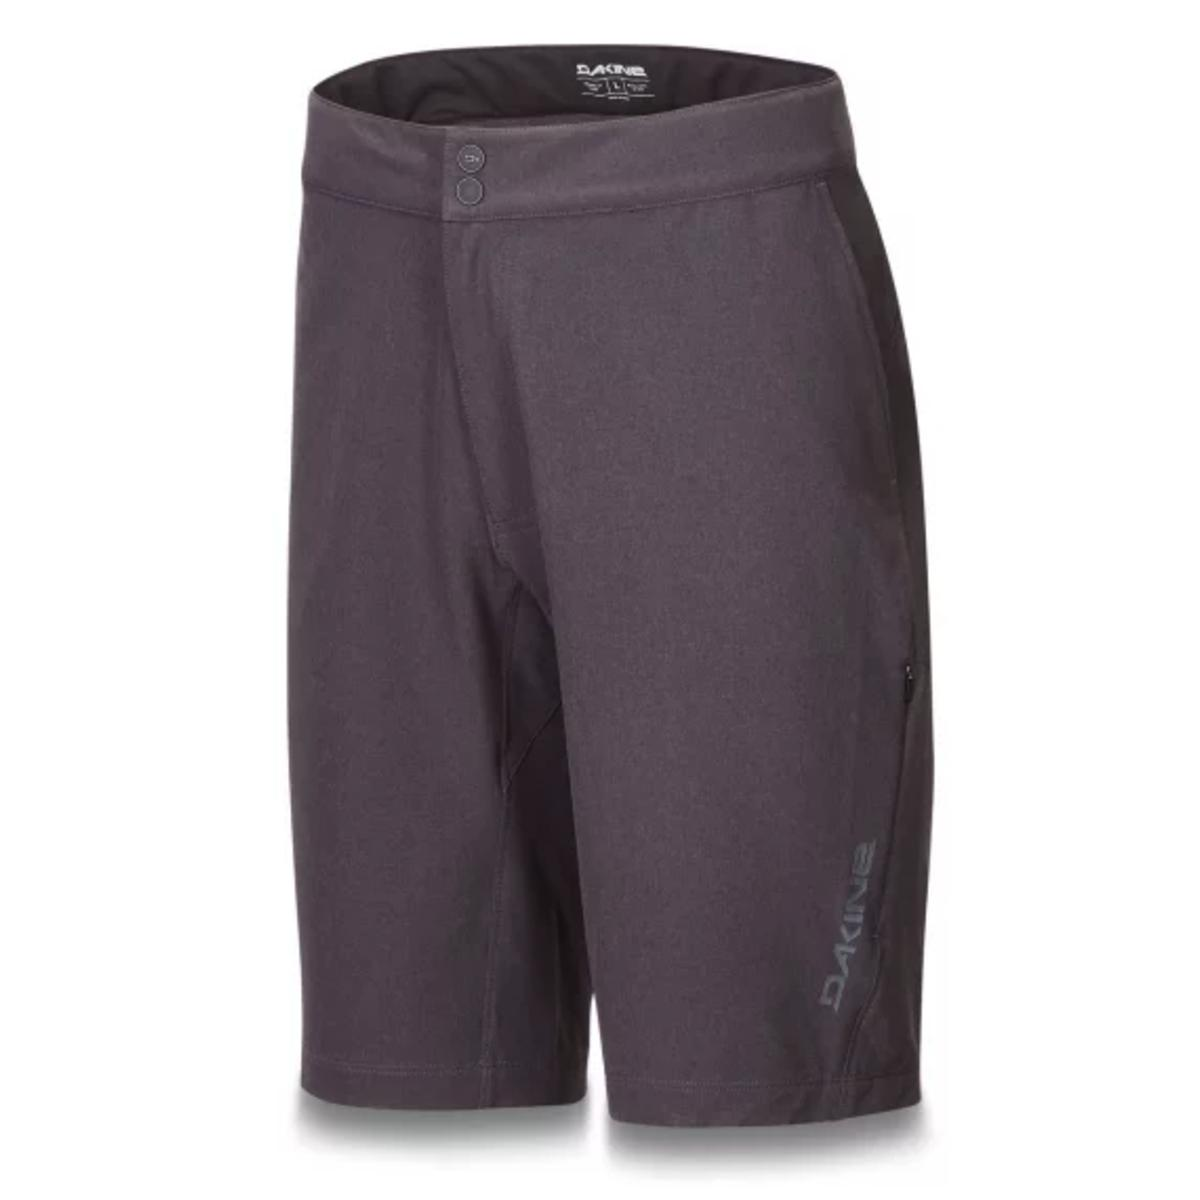 Dakine Syncline Men's Bike Shorts